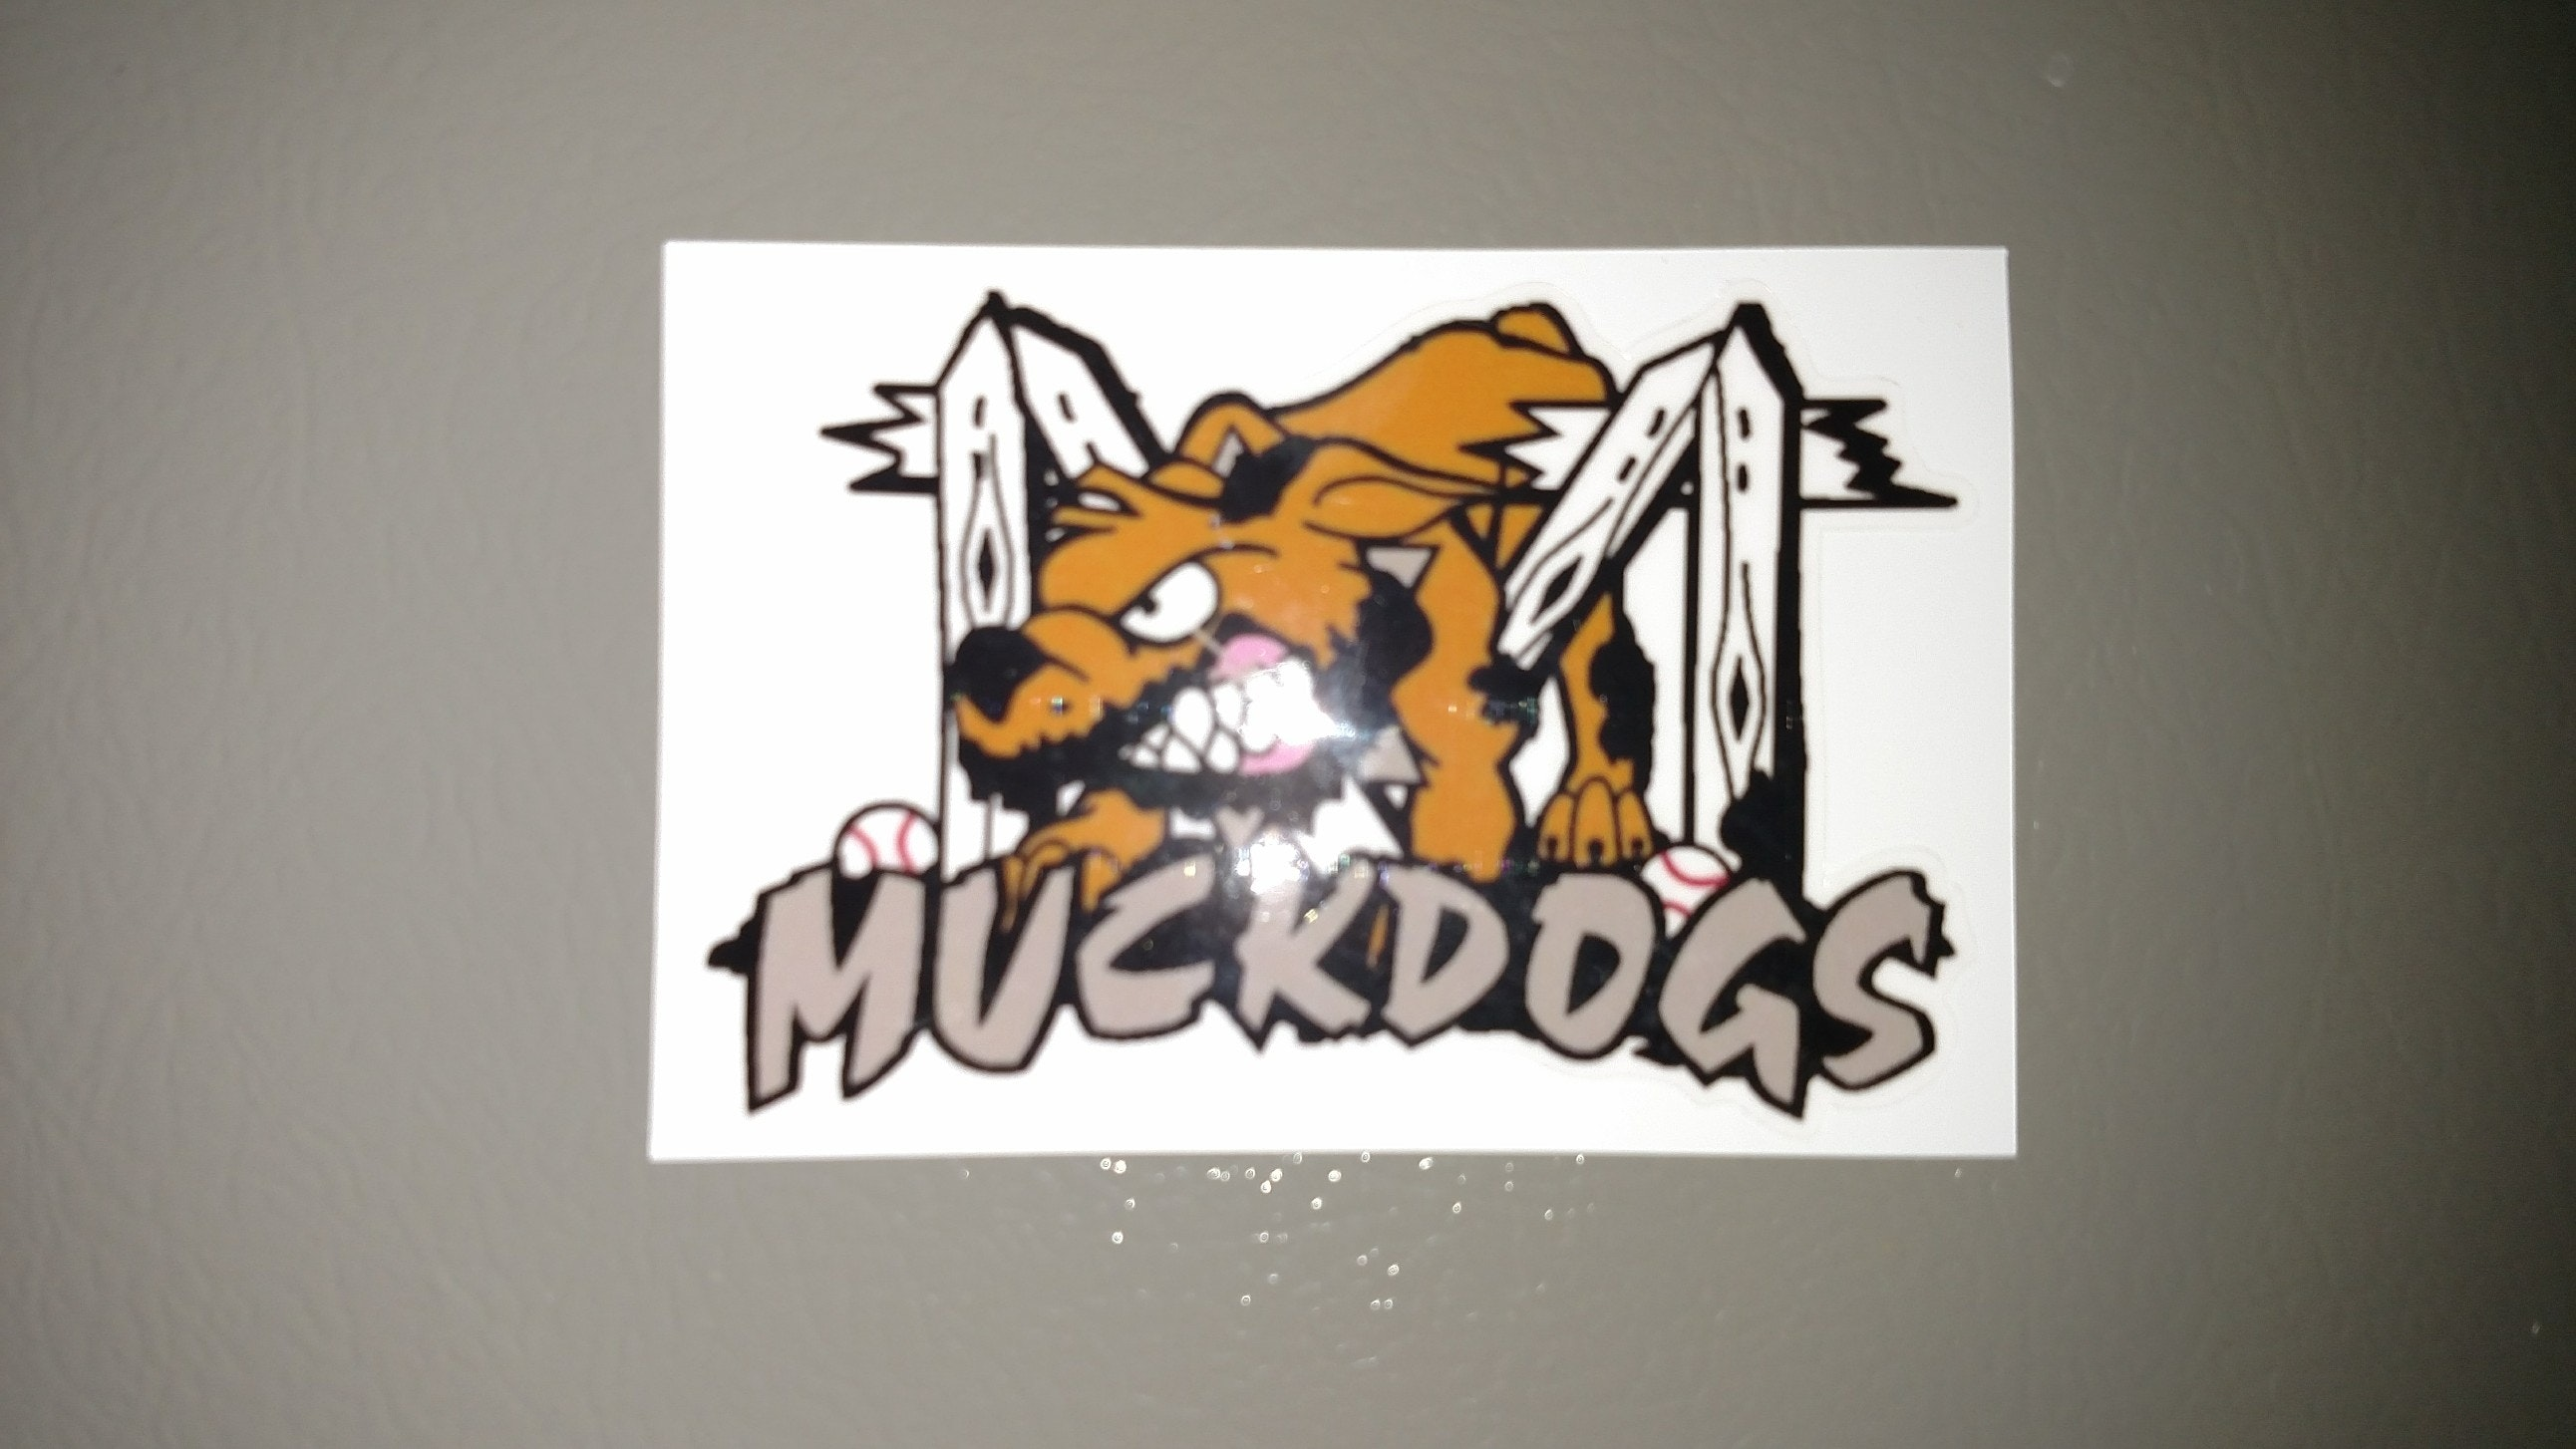 9U Muckdogs Baseball Club